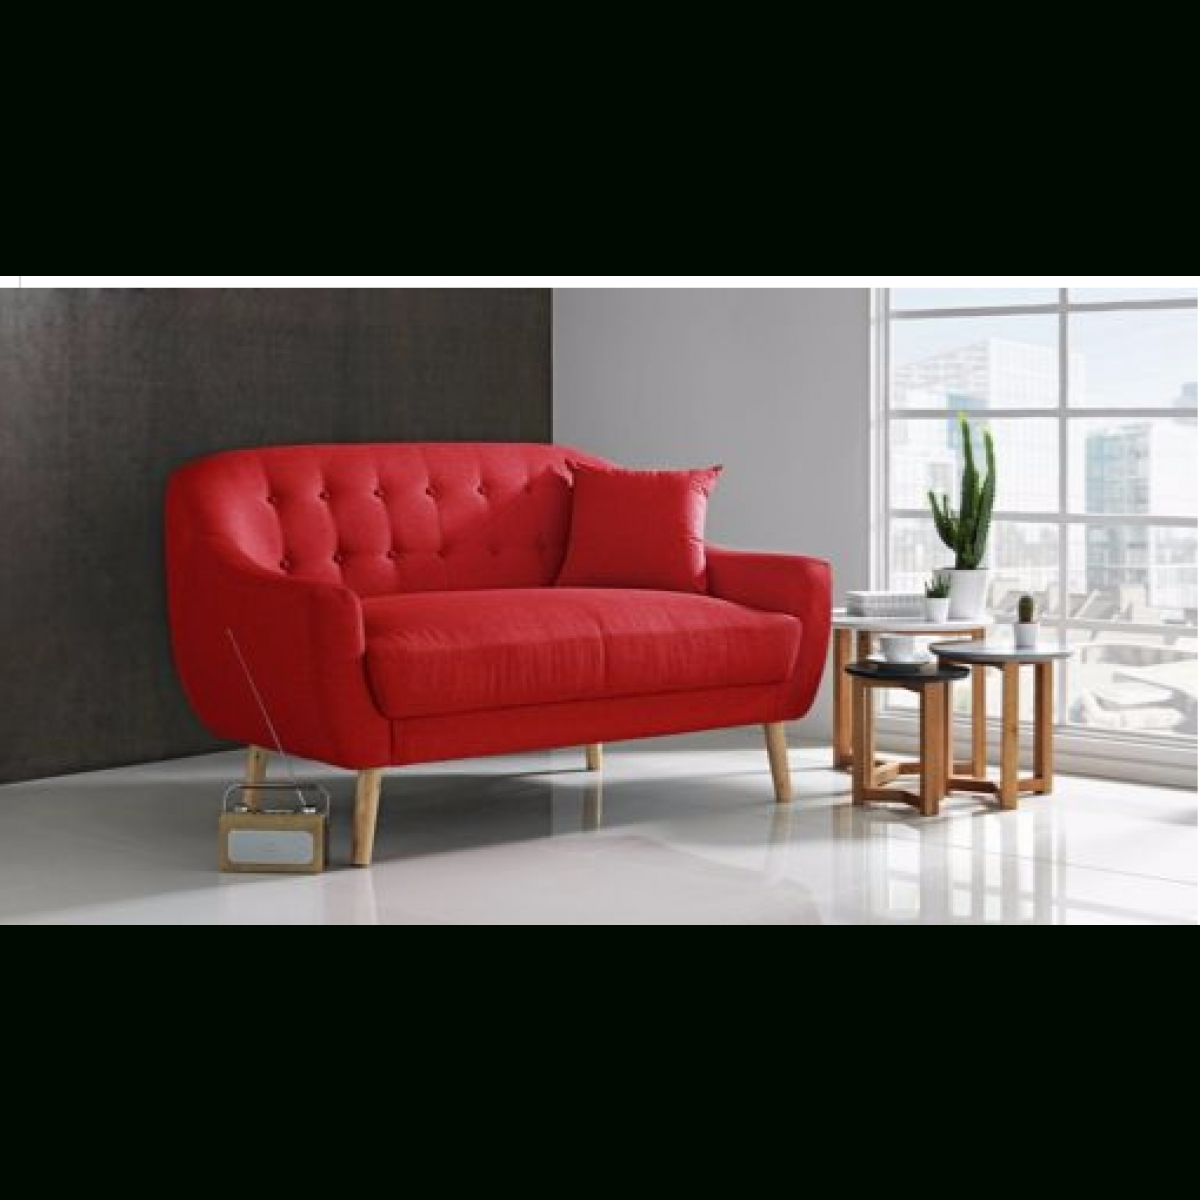 Most Recently Released Hygena Lexie Retro Compact Fabric 2 Seater Sofa – Poppy Red With Regard To Retro Sofas (View 8 of 20)